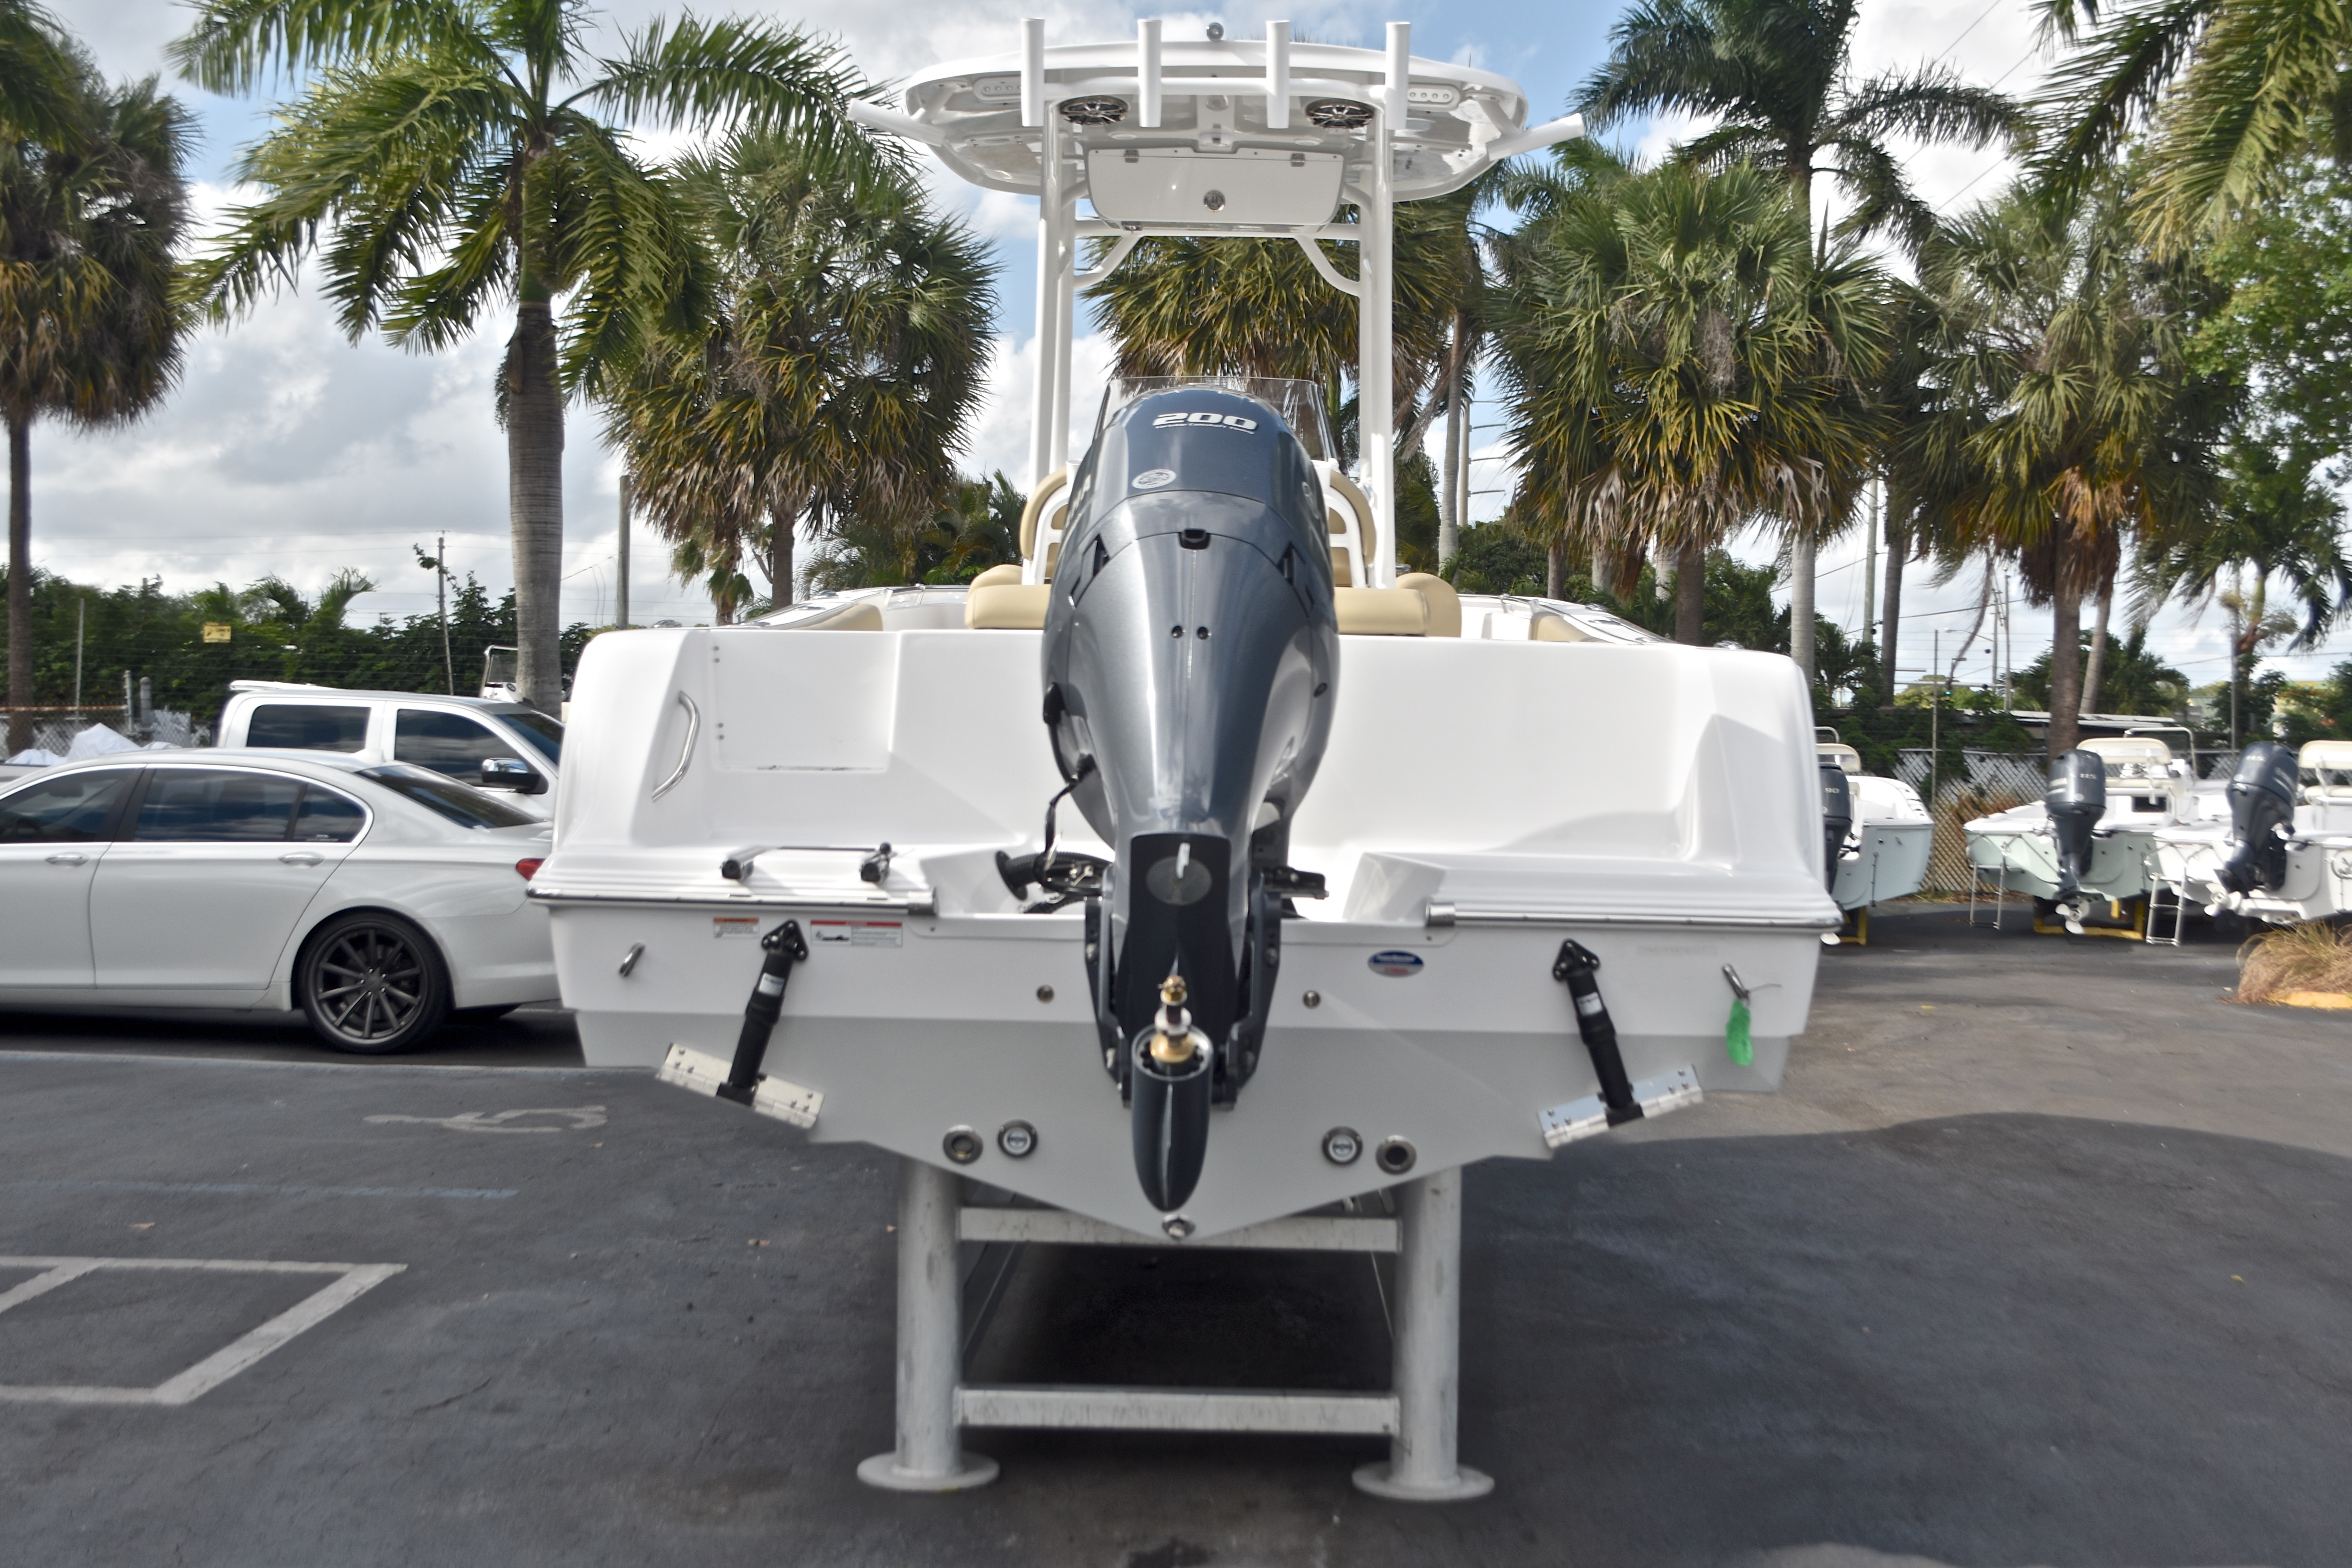 Thumbnail 7 for New 2017 Sportsman Open 232 Center Console boat for sale in West Palm Beach, FL